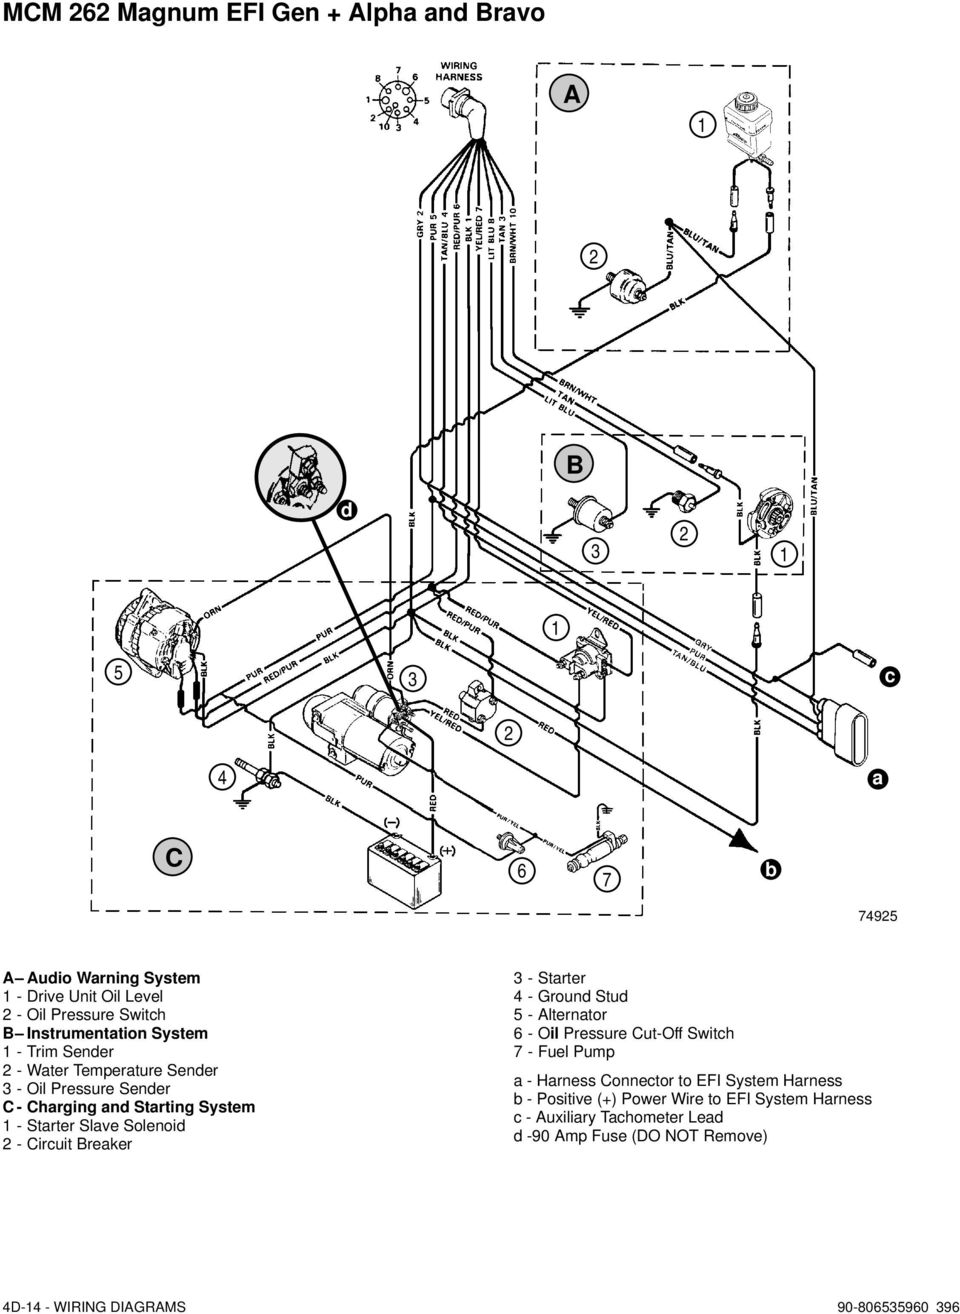 Wonderful mercruiser starter slave selenoid wiring diagram ideas electrical systems wiring diagrams pdf asfbconference2016 Image collections